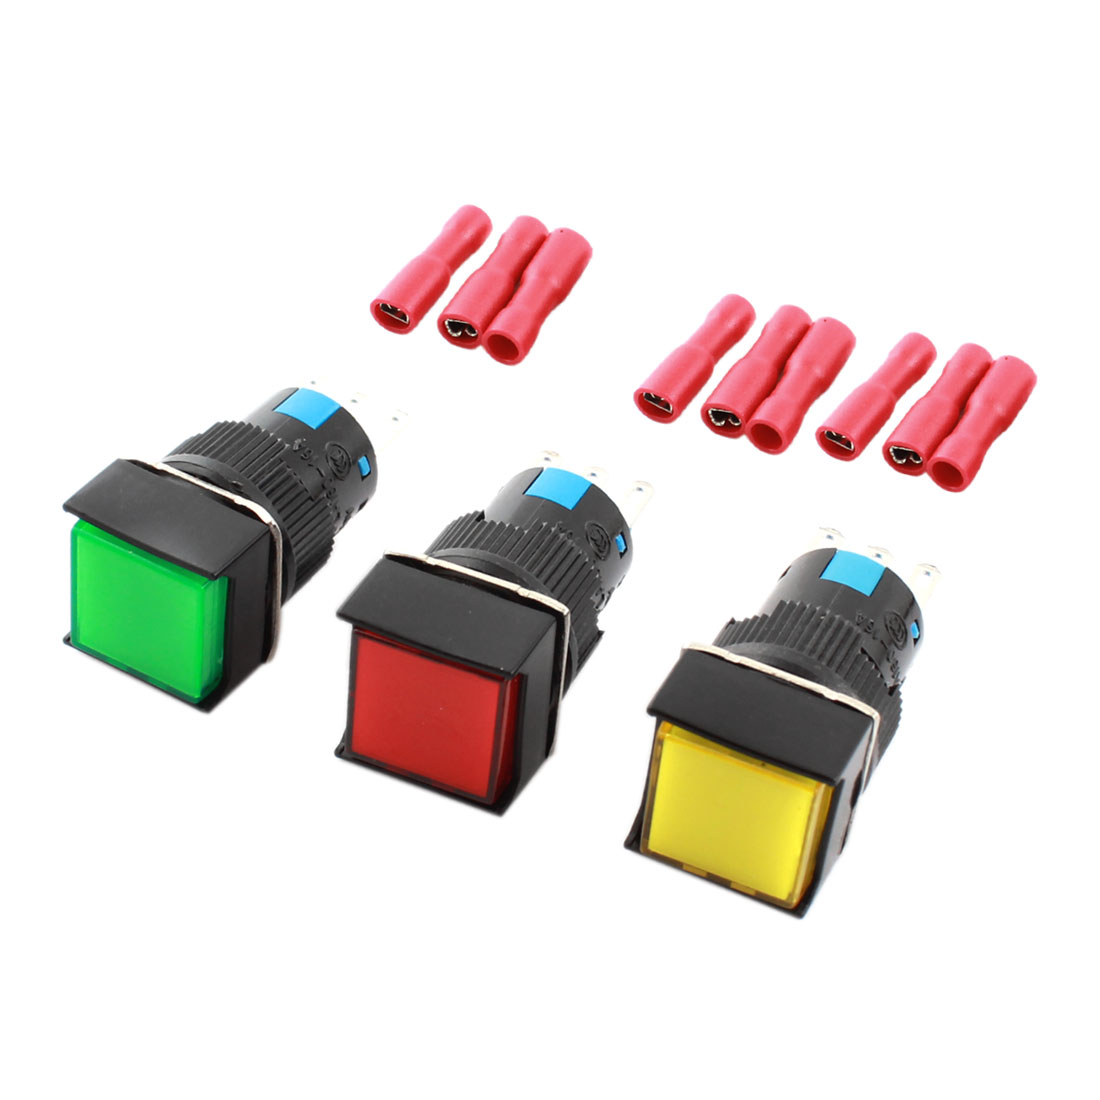 3 Pcs AC 250V 5A Red Green Yellow Button 3Pins 16mm Panel Mounted SPDT Momentary Square Head Pushbutton Switch + 9pcs Crimp Terminals